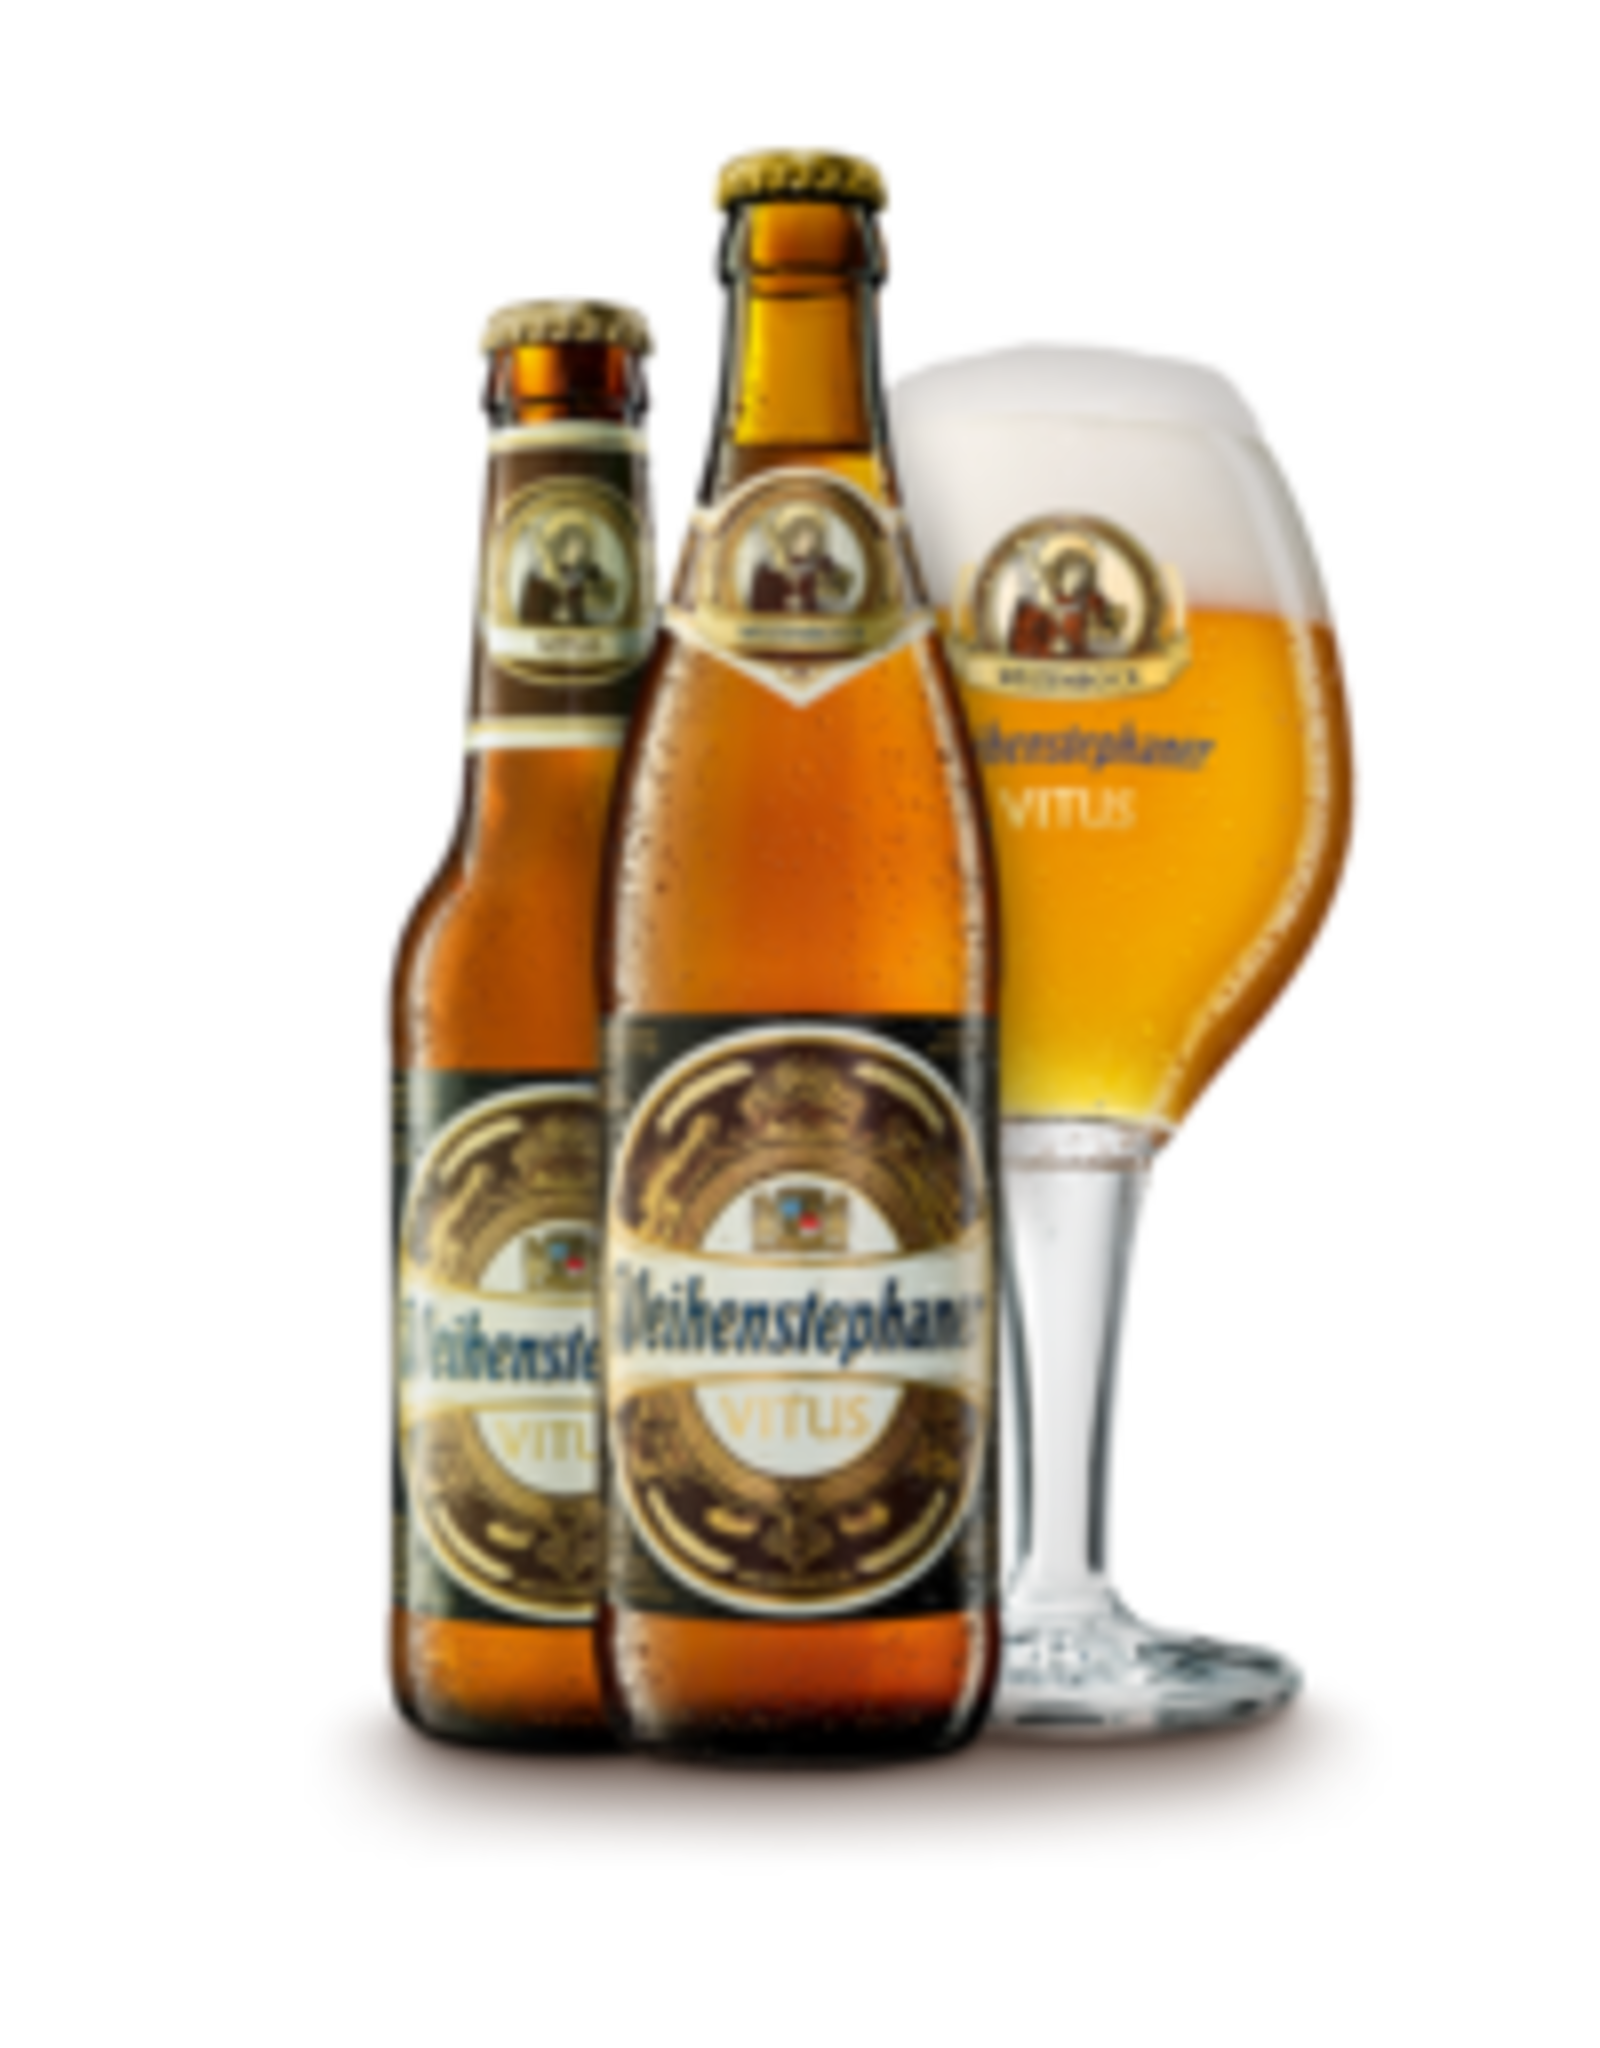 Weihenstephaner Weihenstephaner Vitus Weizenbock 500ml bottle